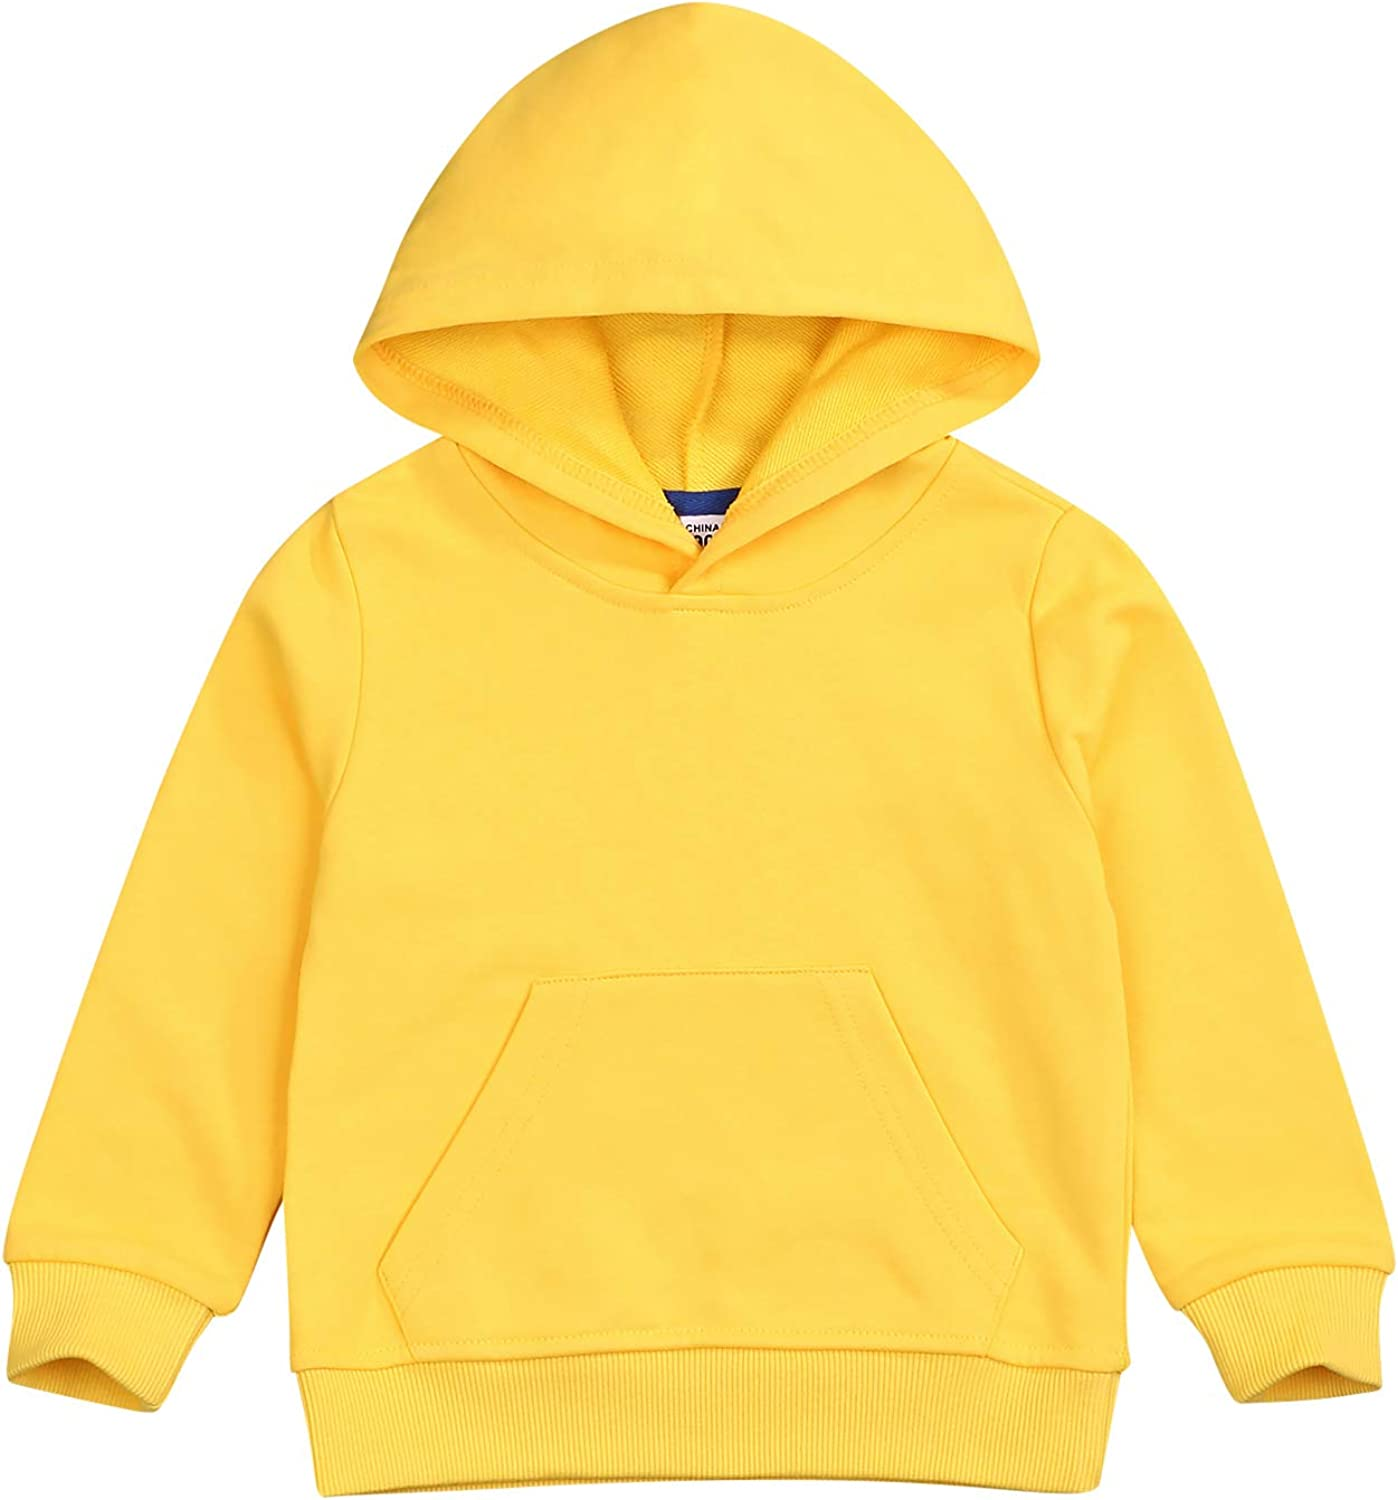 Baby Sweatshirt 1-6 Years Kids Toddler Boy Girl Long Sleeve Solid Hooded Casual Tops Pullover Fall Winter